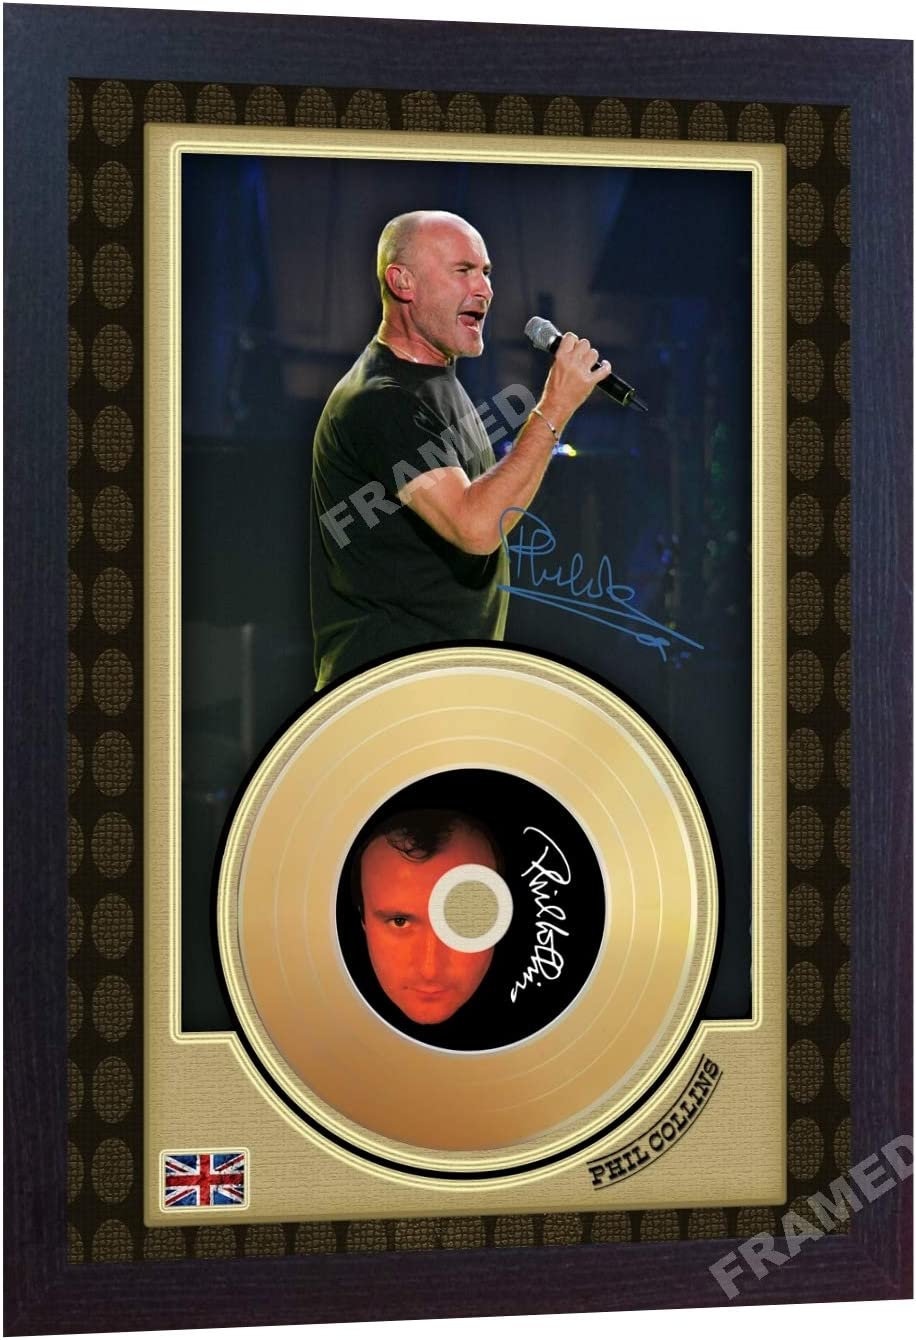 SGH SERVICES Phil Collins Mini Gold Vinyl CD Record Signed Framed Photo Print